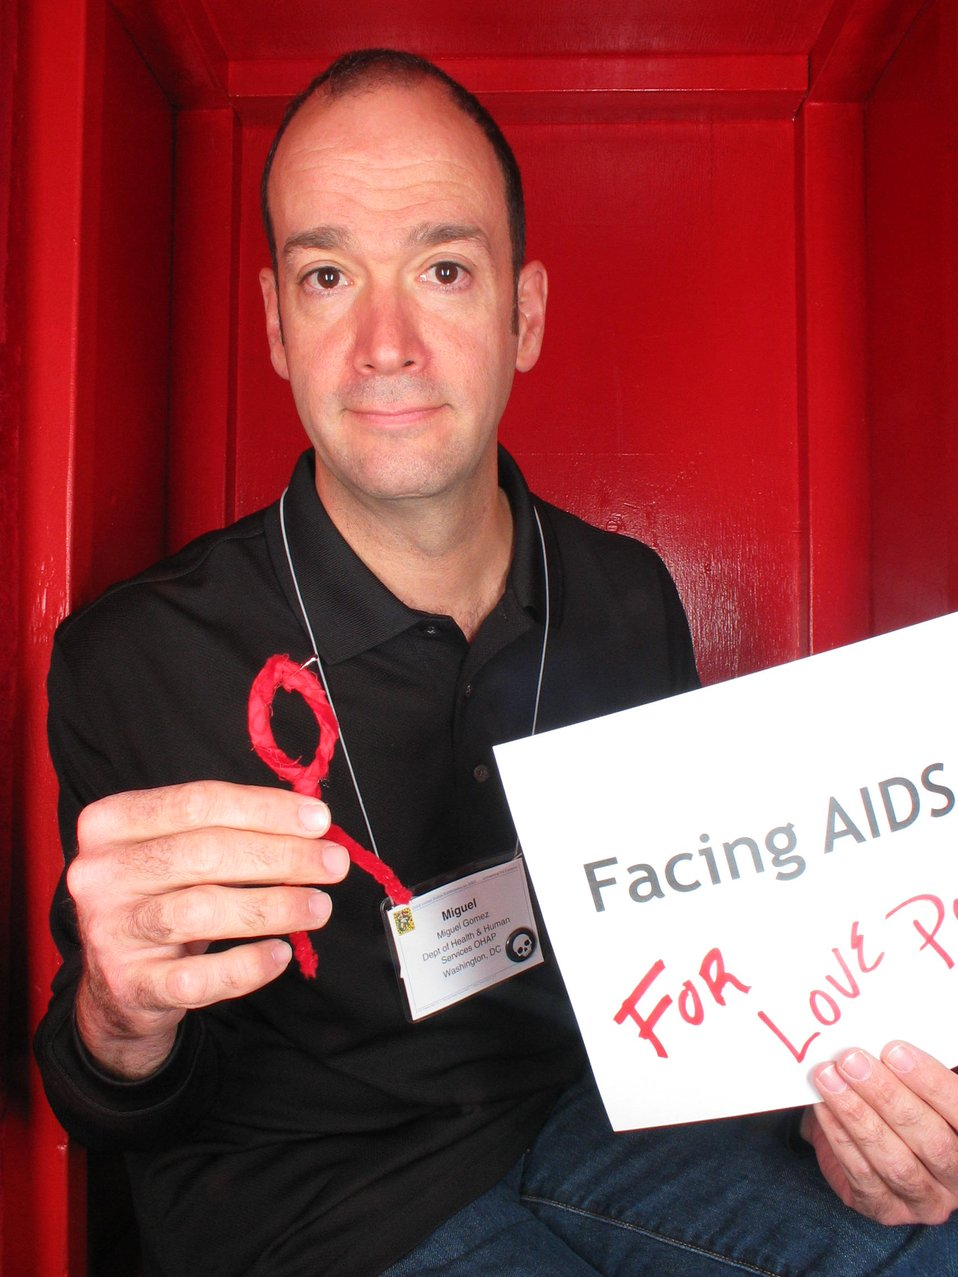 Facing AIDS for love